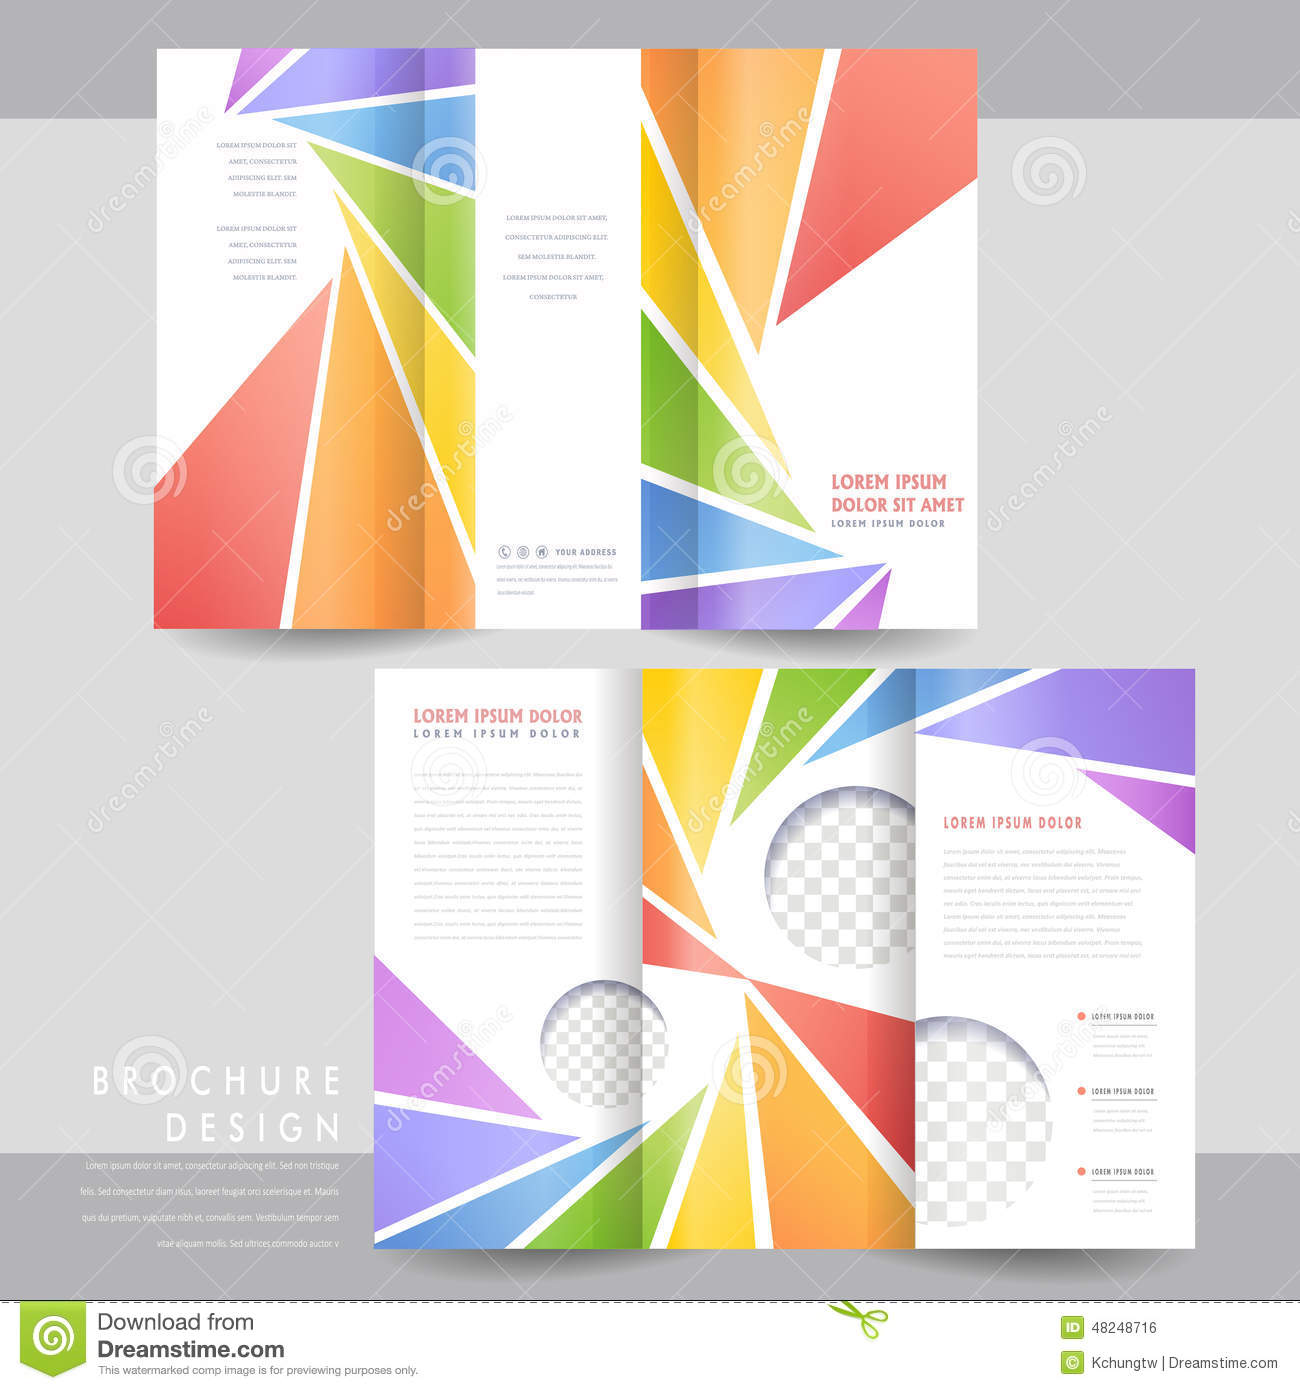 Colorful tri fold brochure template design stock vector for Folded brochure template